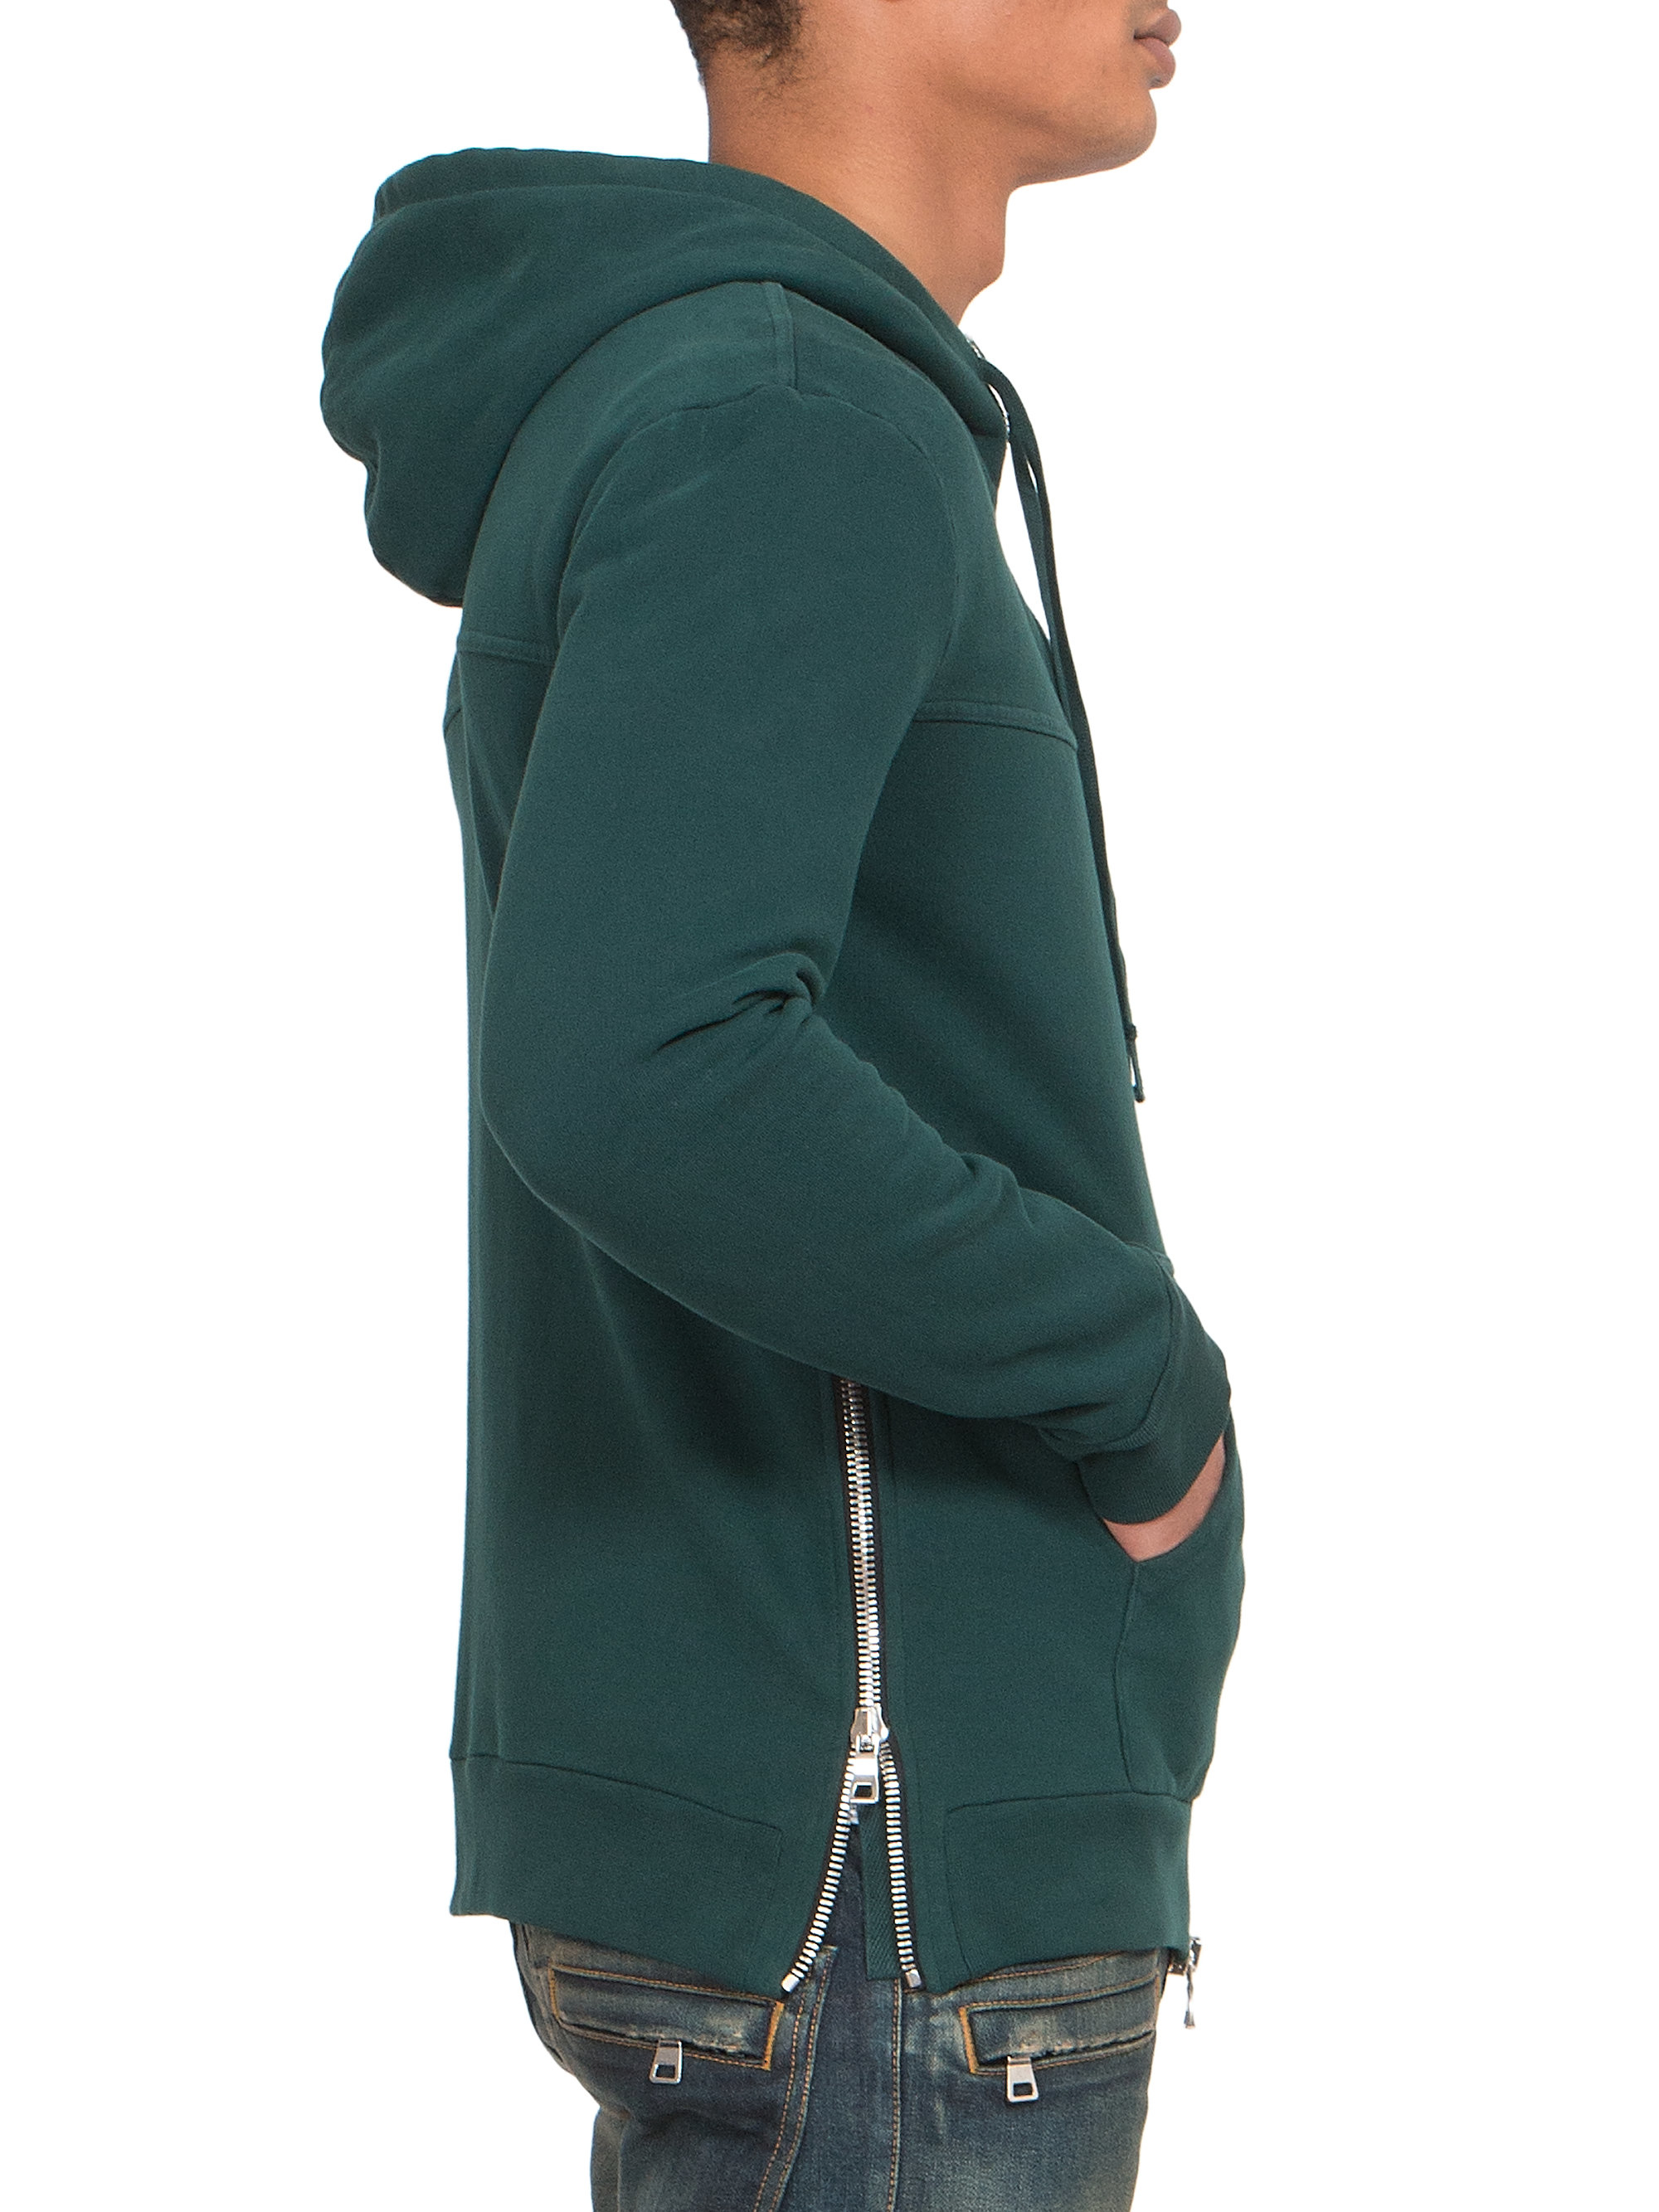 Balmain Embroidered Crest Hoodie In Green For Men Lyst